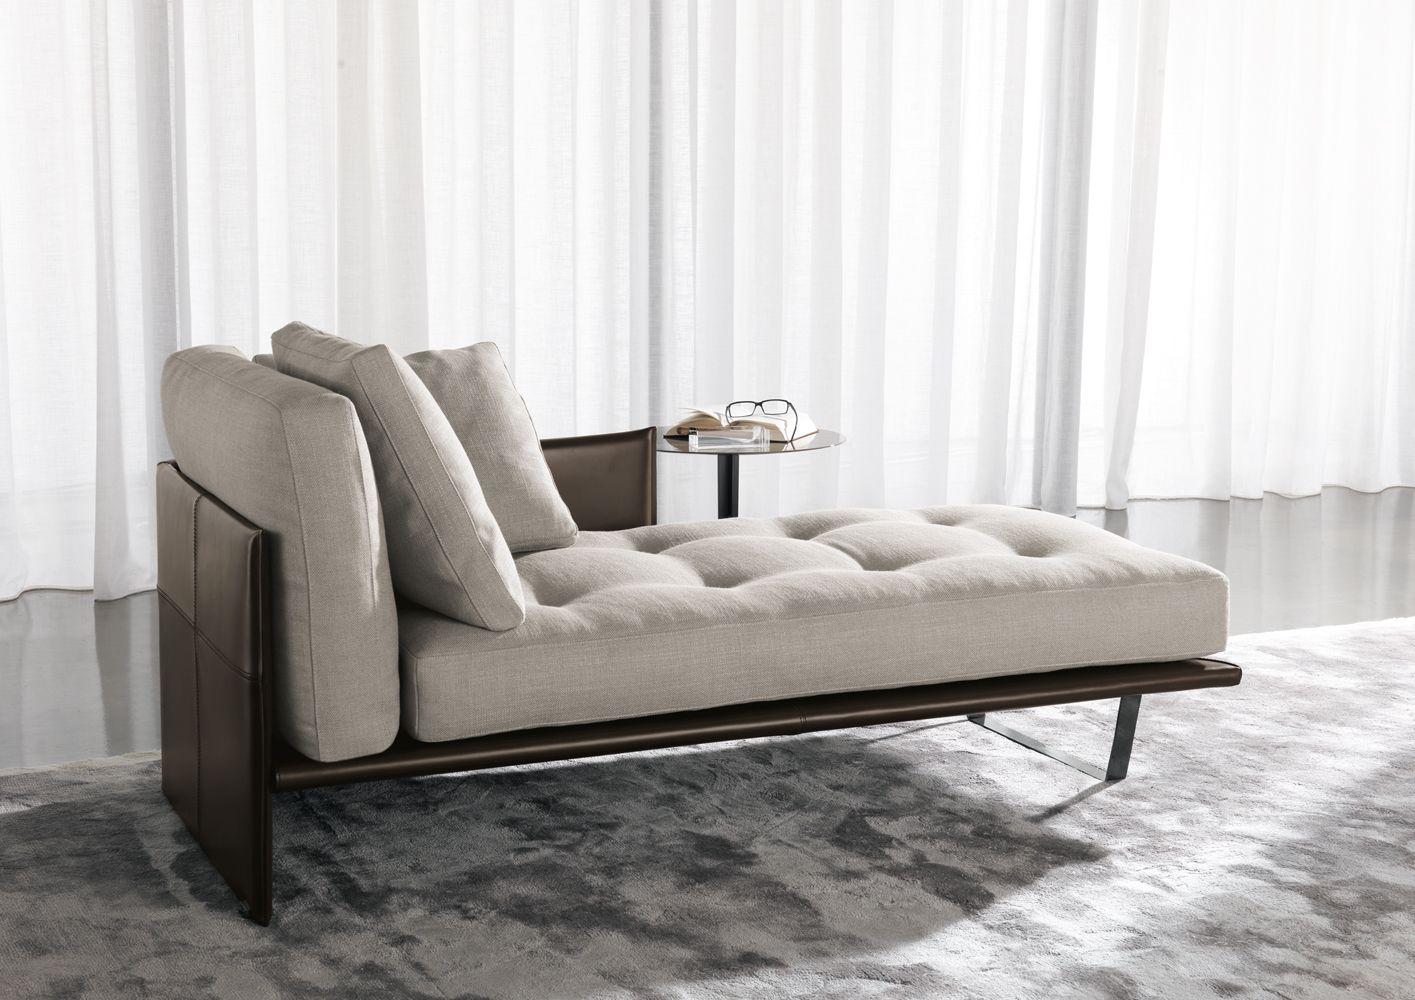 Luggage Chaise Lounge Designed By Rodolfo Dordoni Chaise Lounge